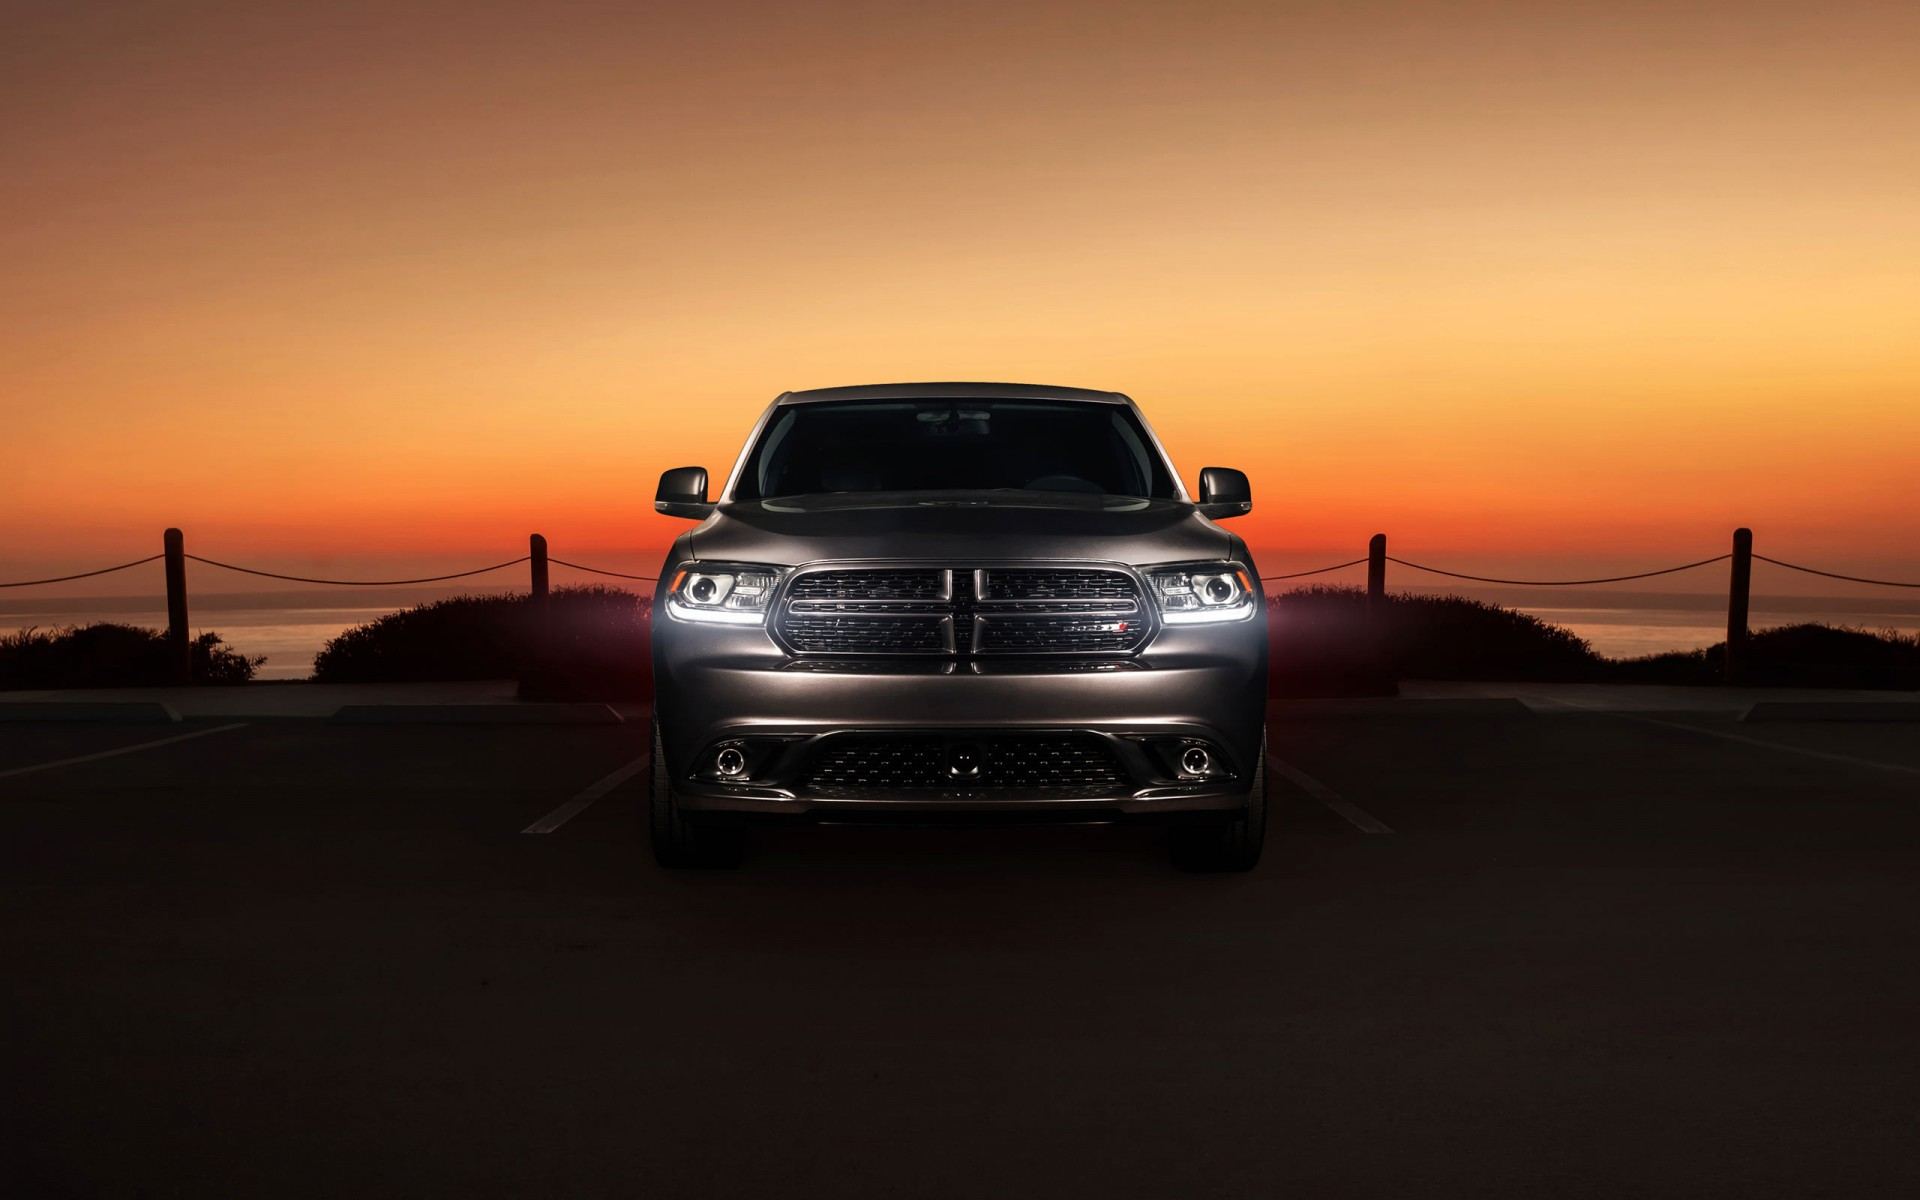 2014 Dodge Durango 2 Wallpaper in 1920x1200 Resolution